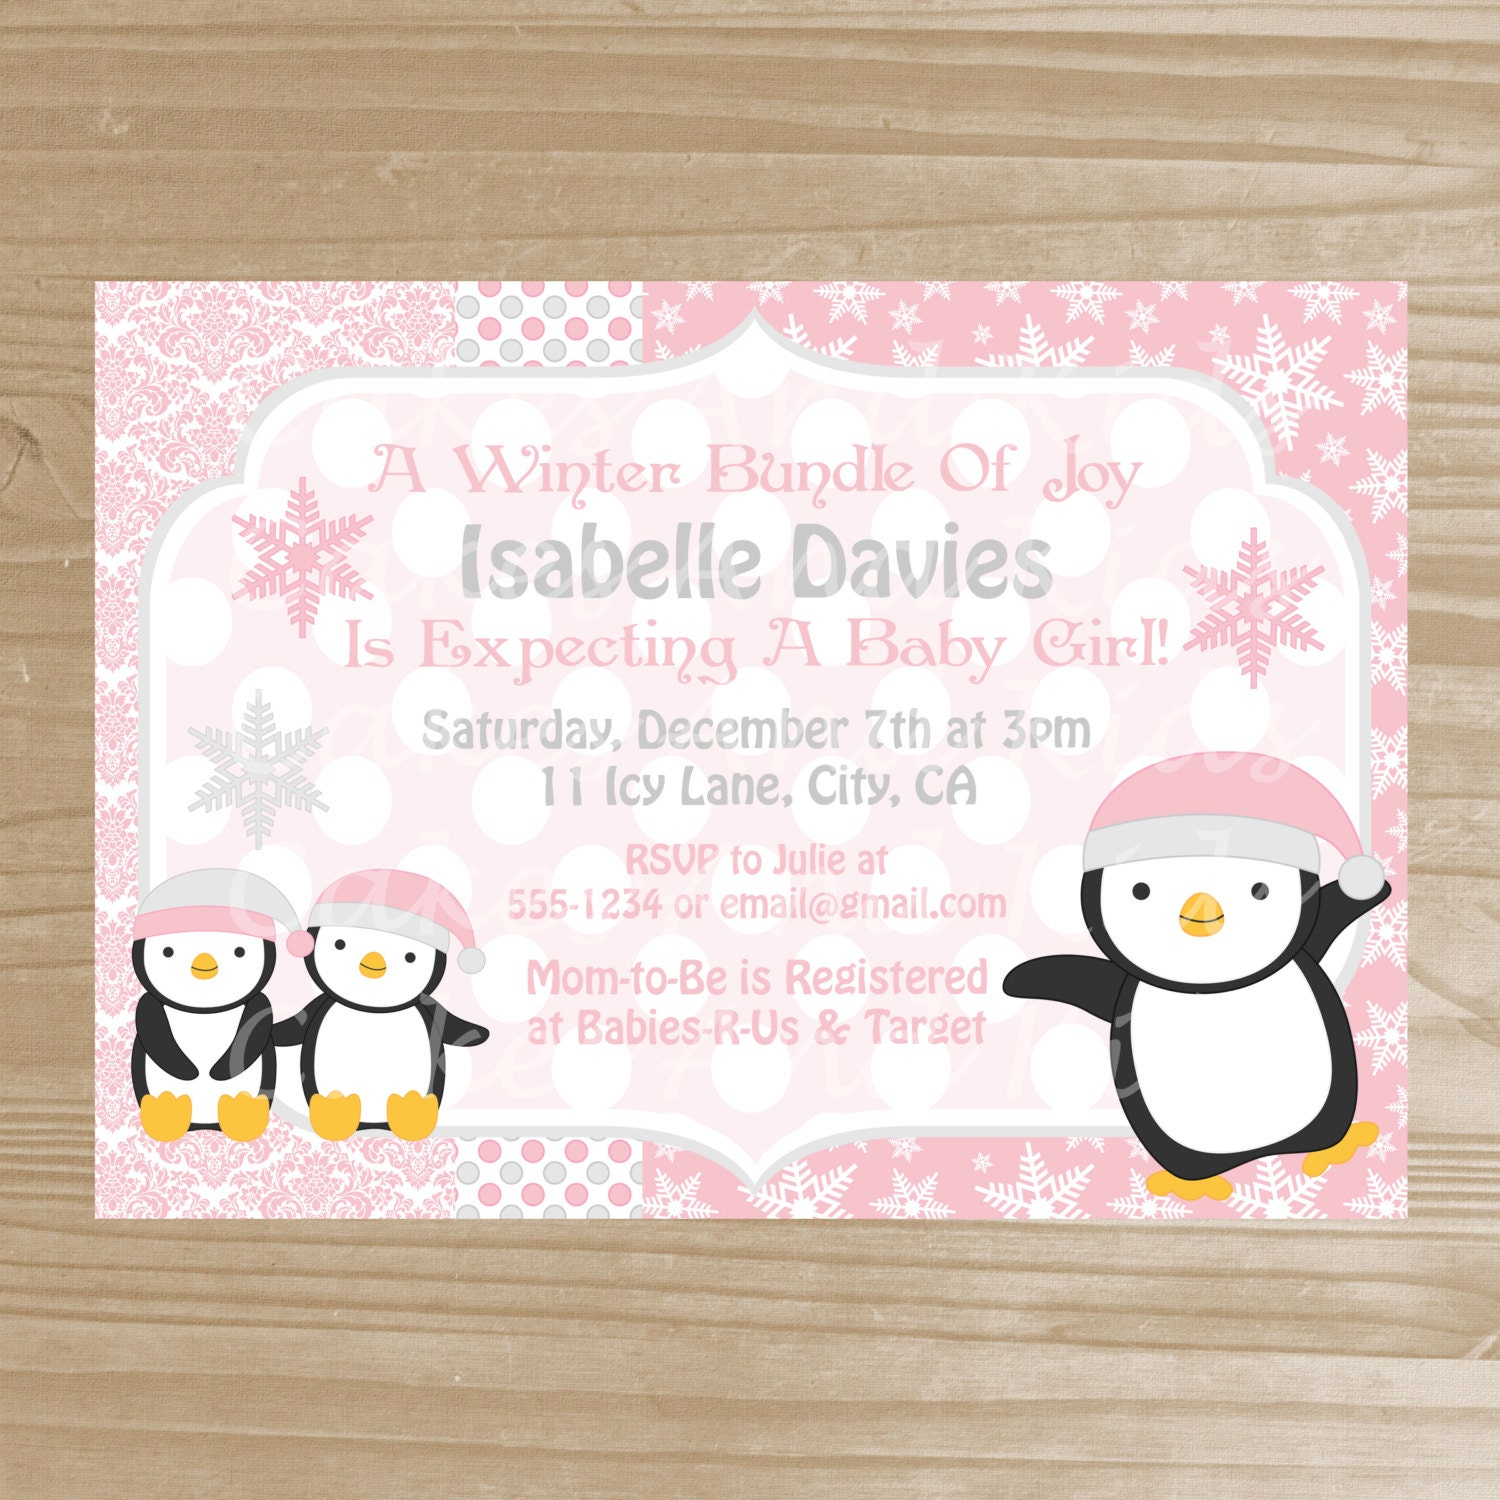 penguin baby shower invitation wi nter baby shower invitation for a